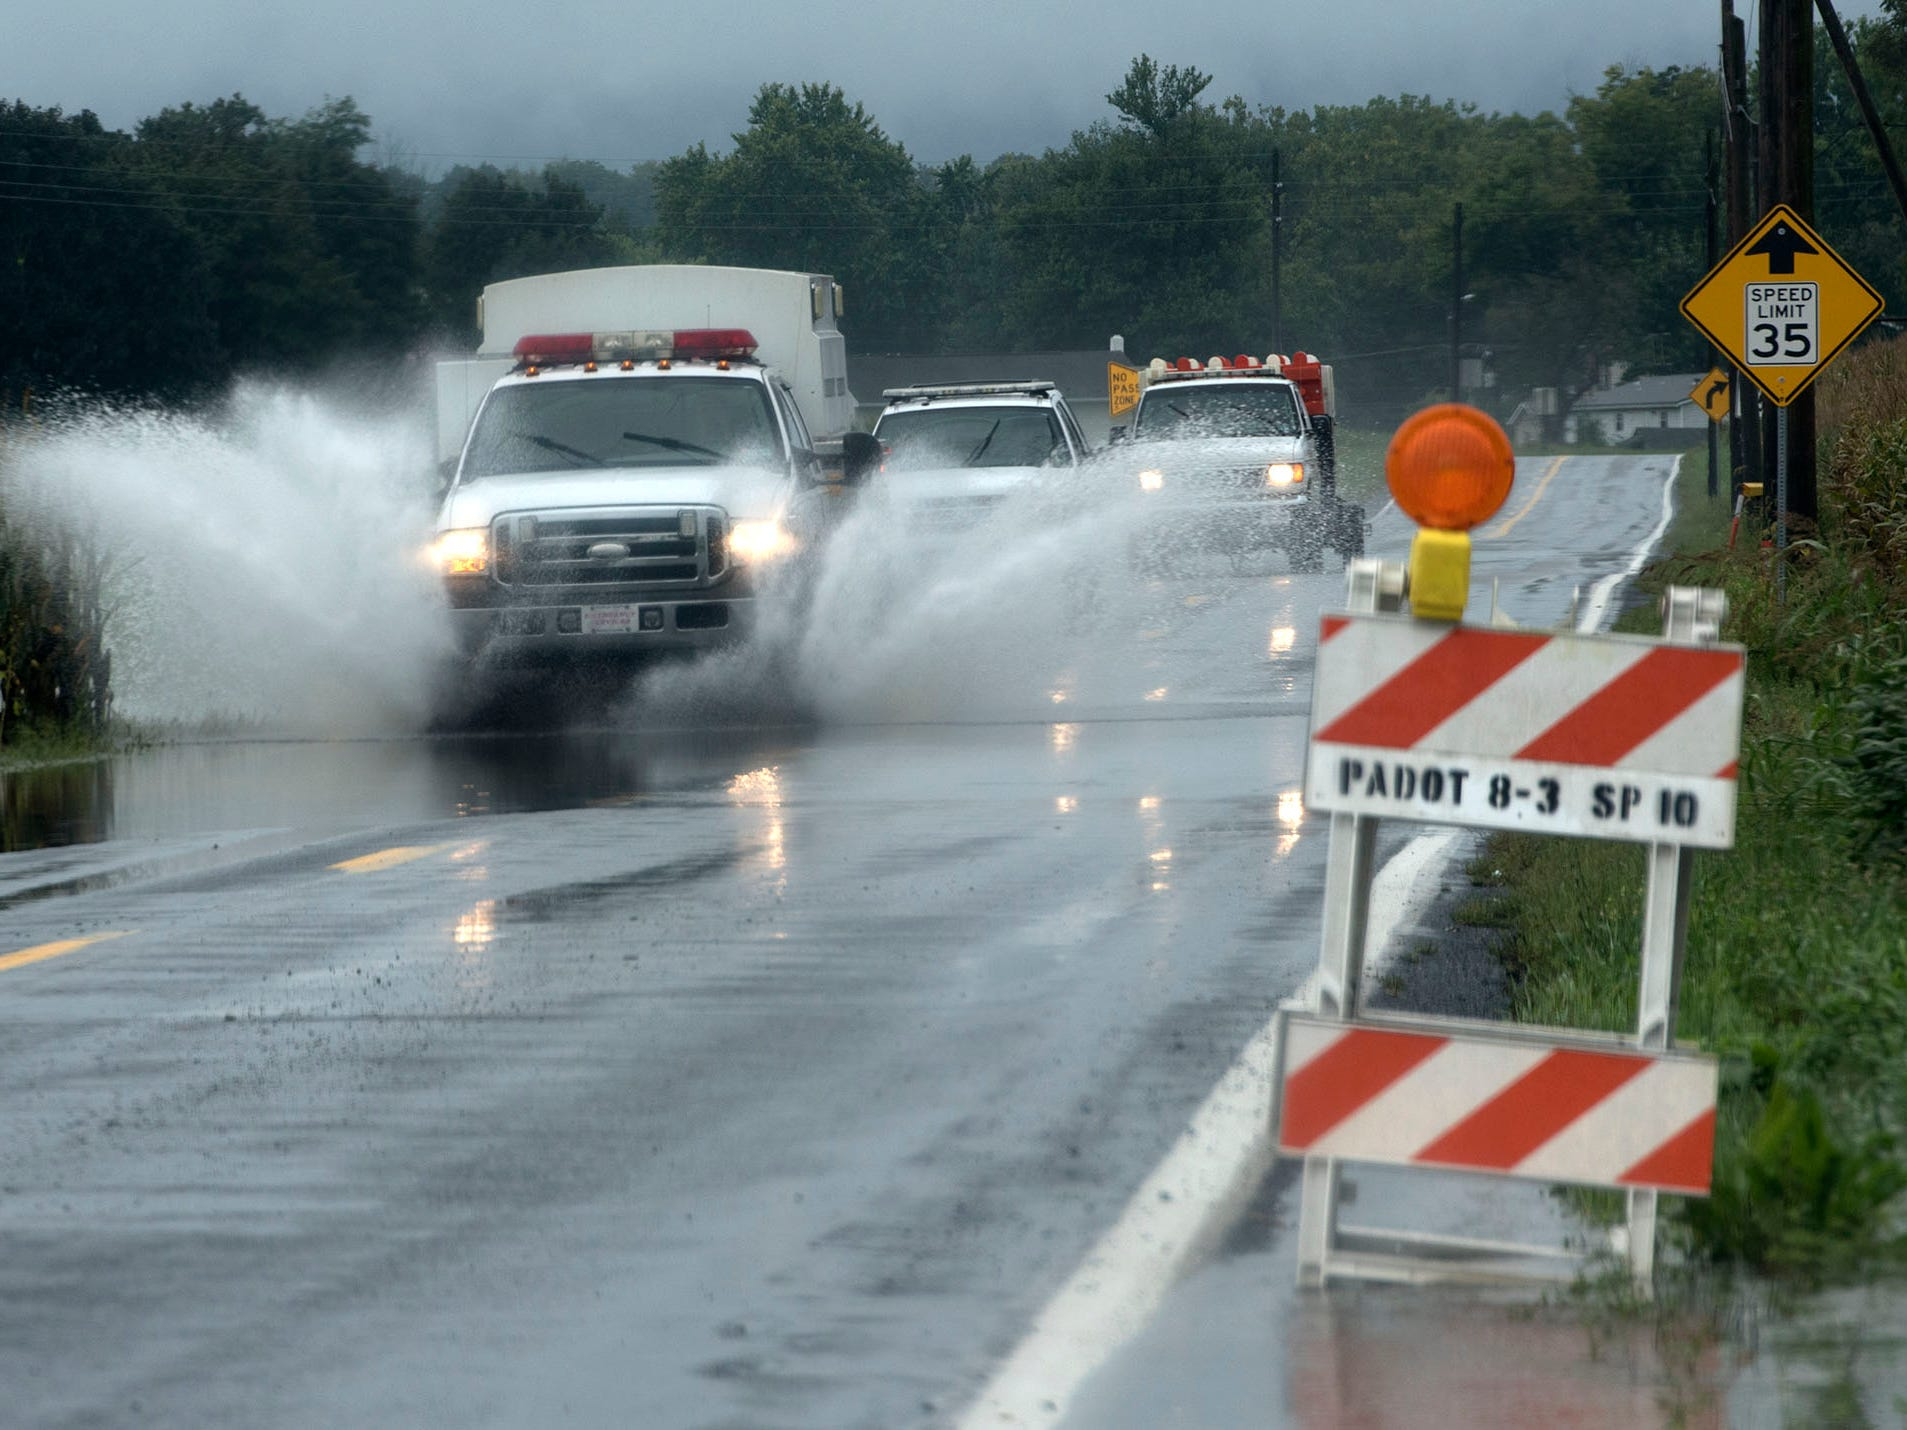 Emergency vehicles travel along Mercersbrug Road during the storm. A bridge was destroyed and there is street flooding and road closings around Shimpstown Road in the Mercersburg area on Thursday, September 13, 2018.